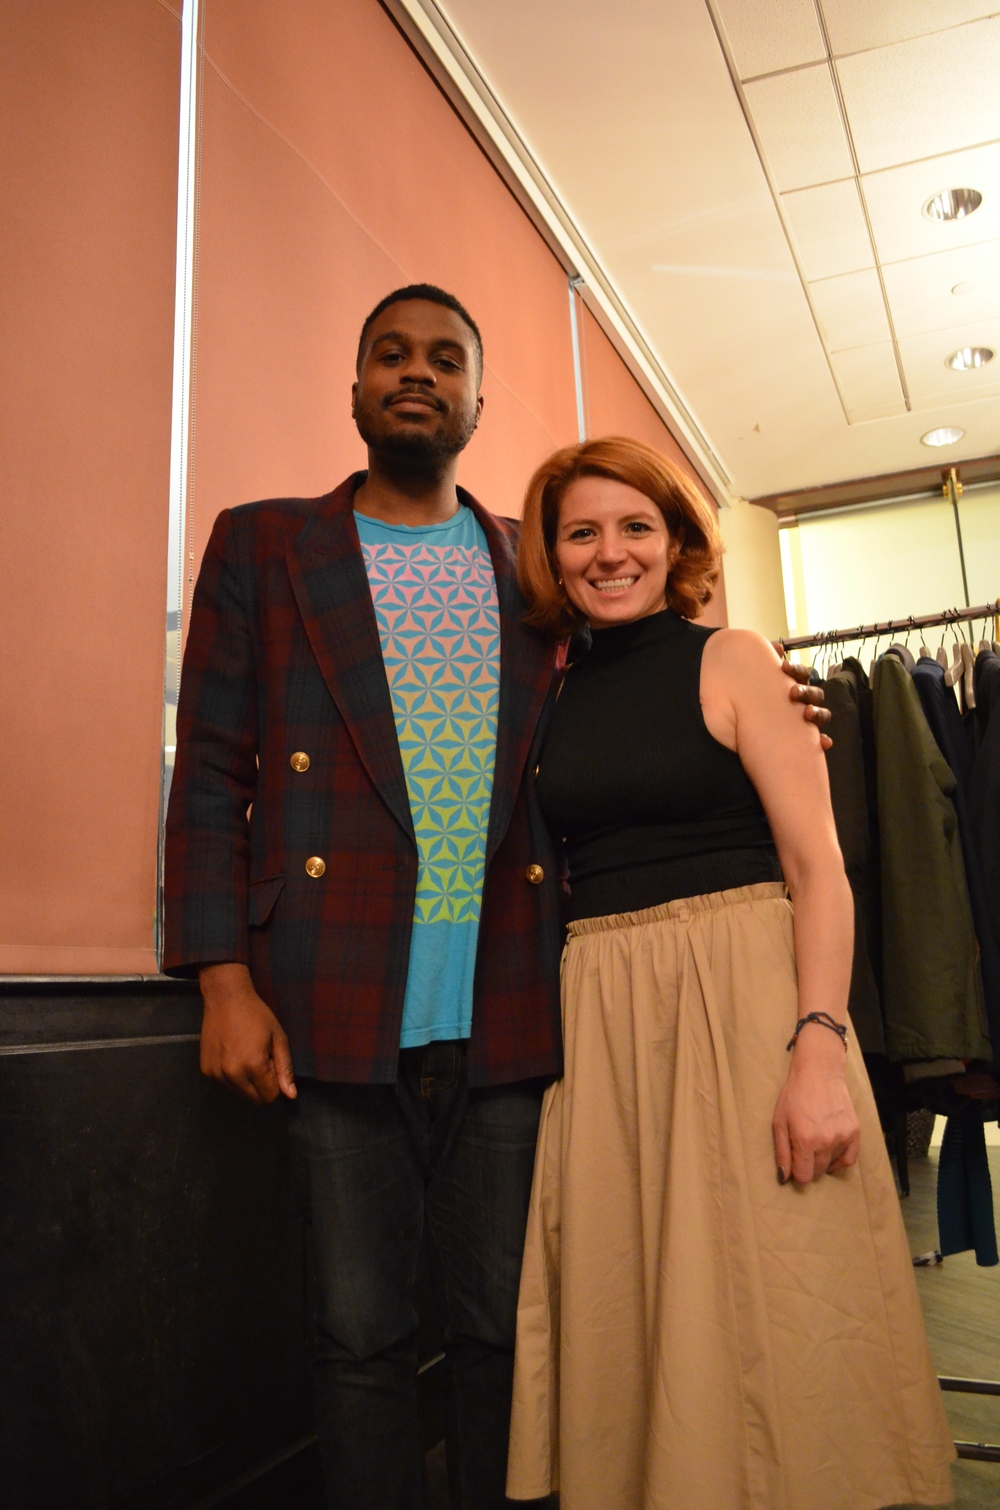 Tuesday, Oct. 7 at Head to Toe Fashion Show & Trunk Show | Tatiana Tejedor, t he Co-Owner of  Caramelo Clothing , and her client, Donald Vincent aka  Mr. Hip .